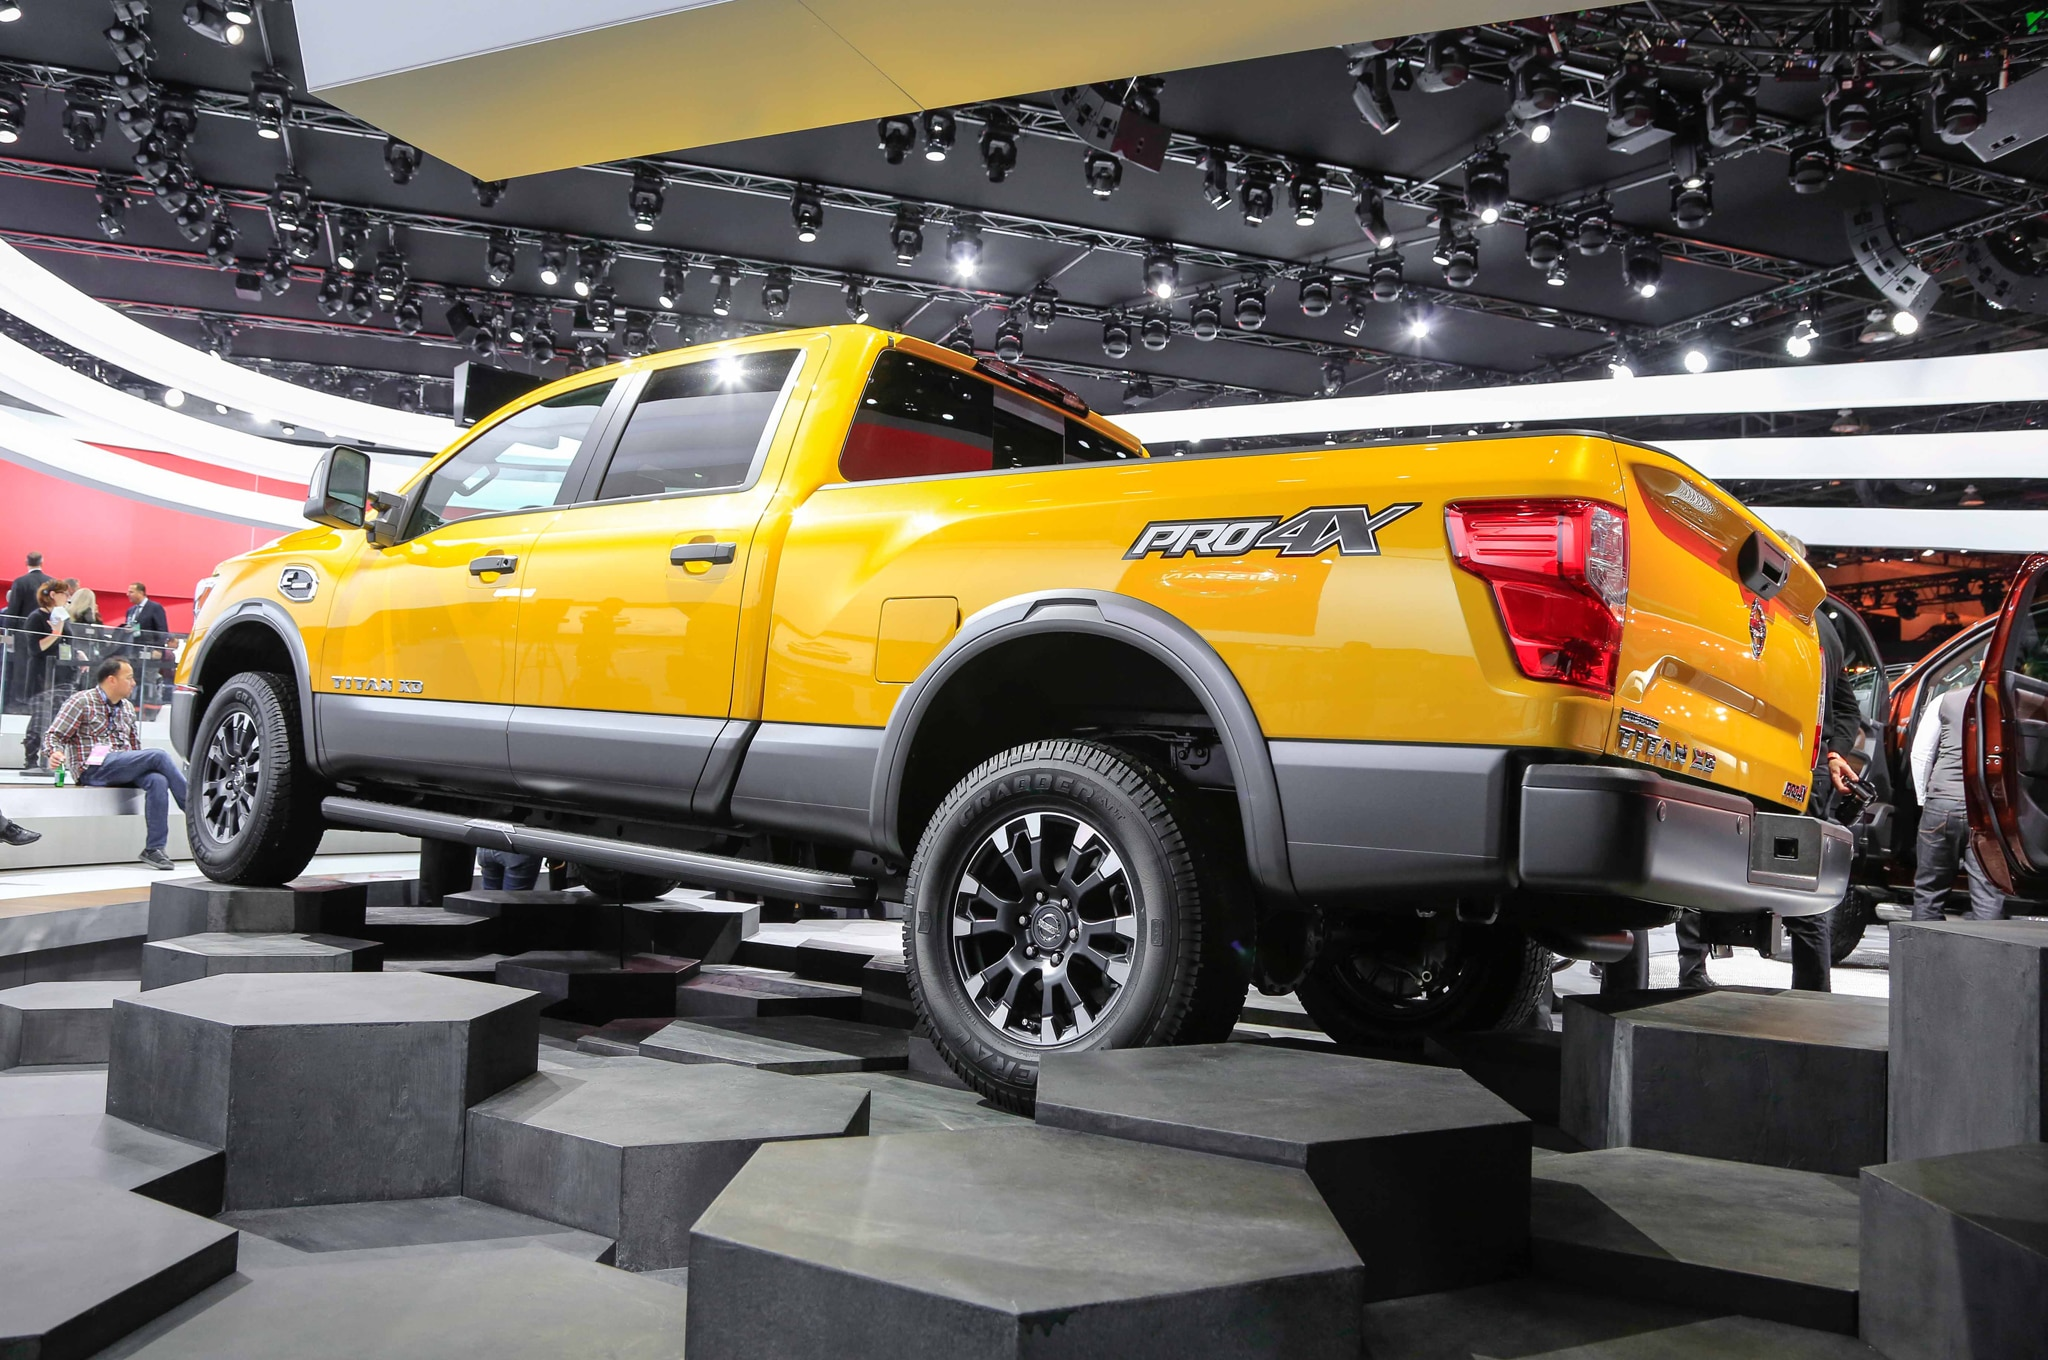 2016 Tacoma Diesel >> 2016 Nissan Titan XD Debuts at Detroit Auto Show